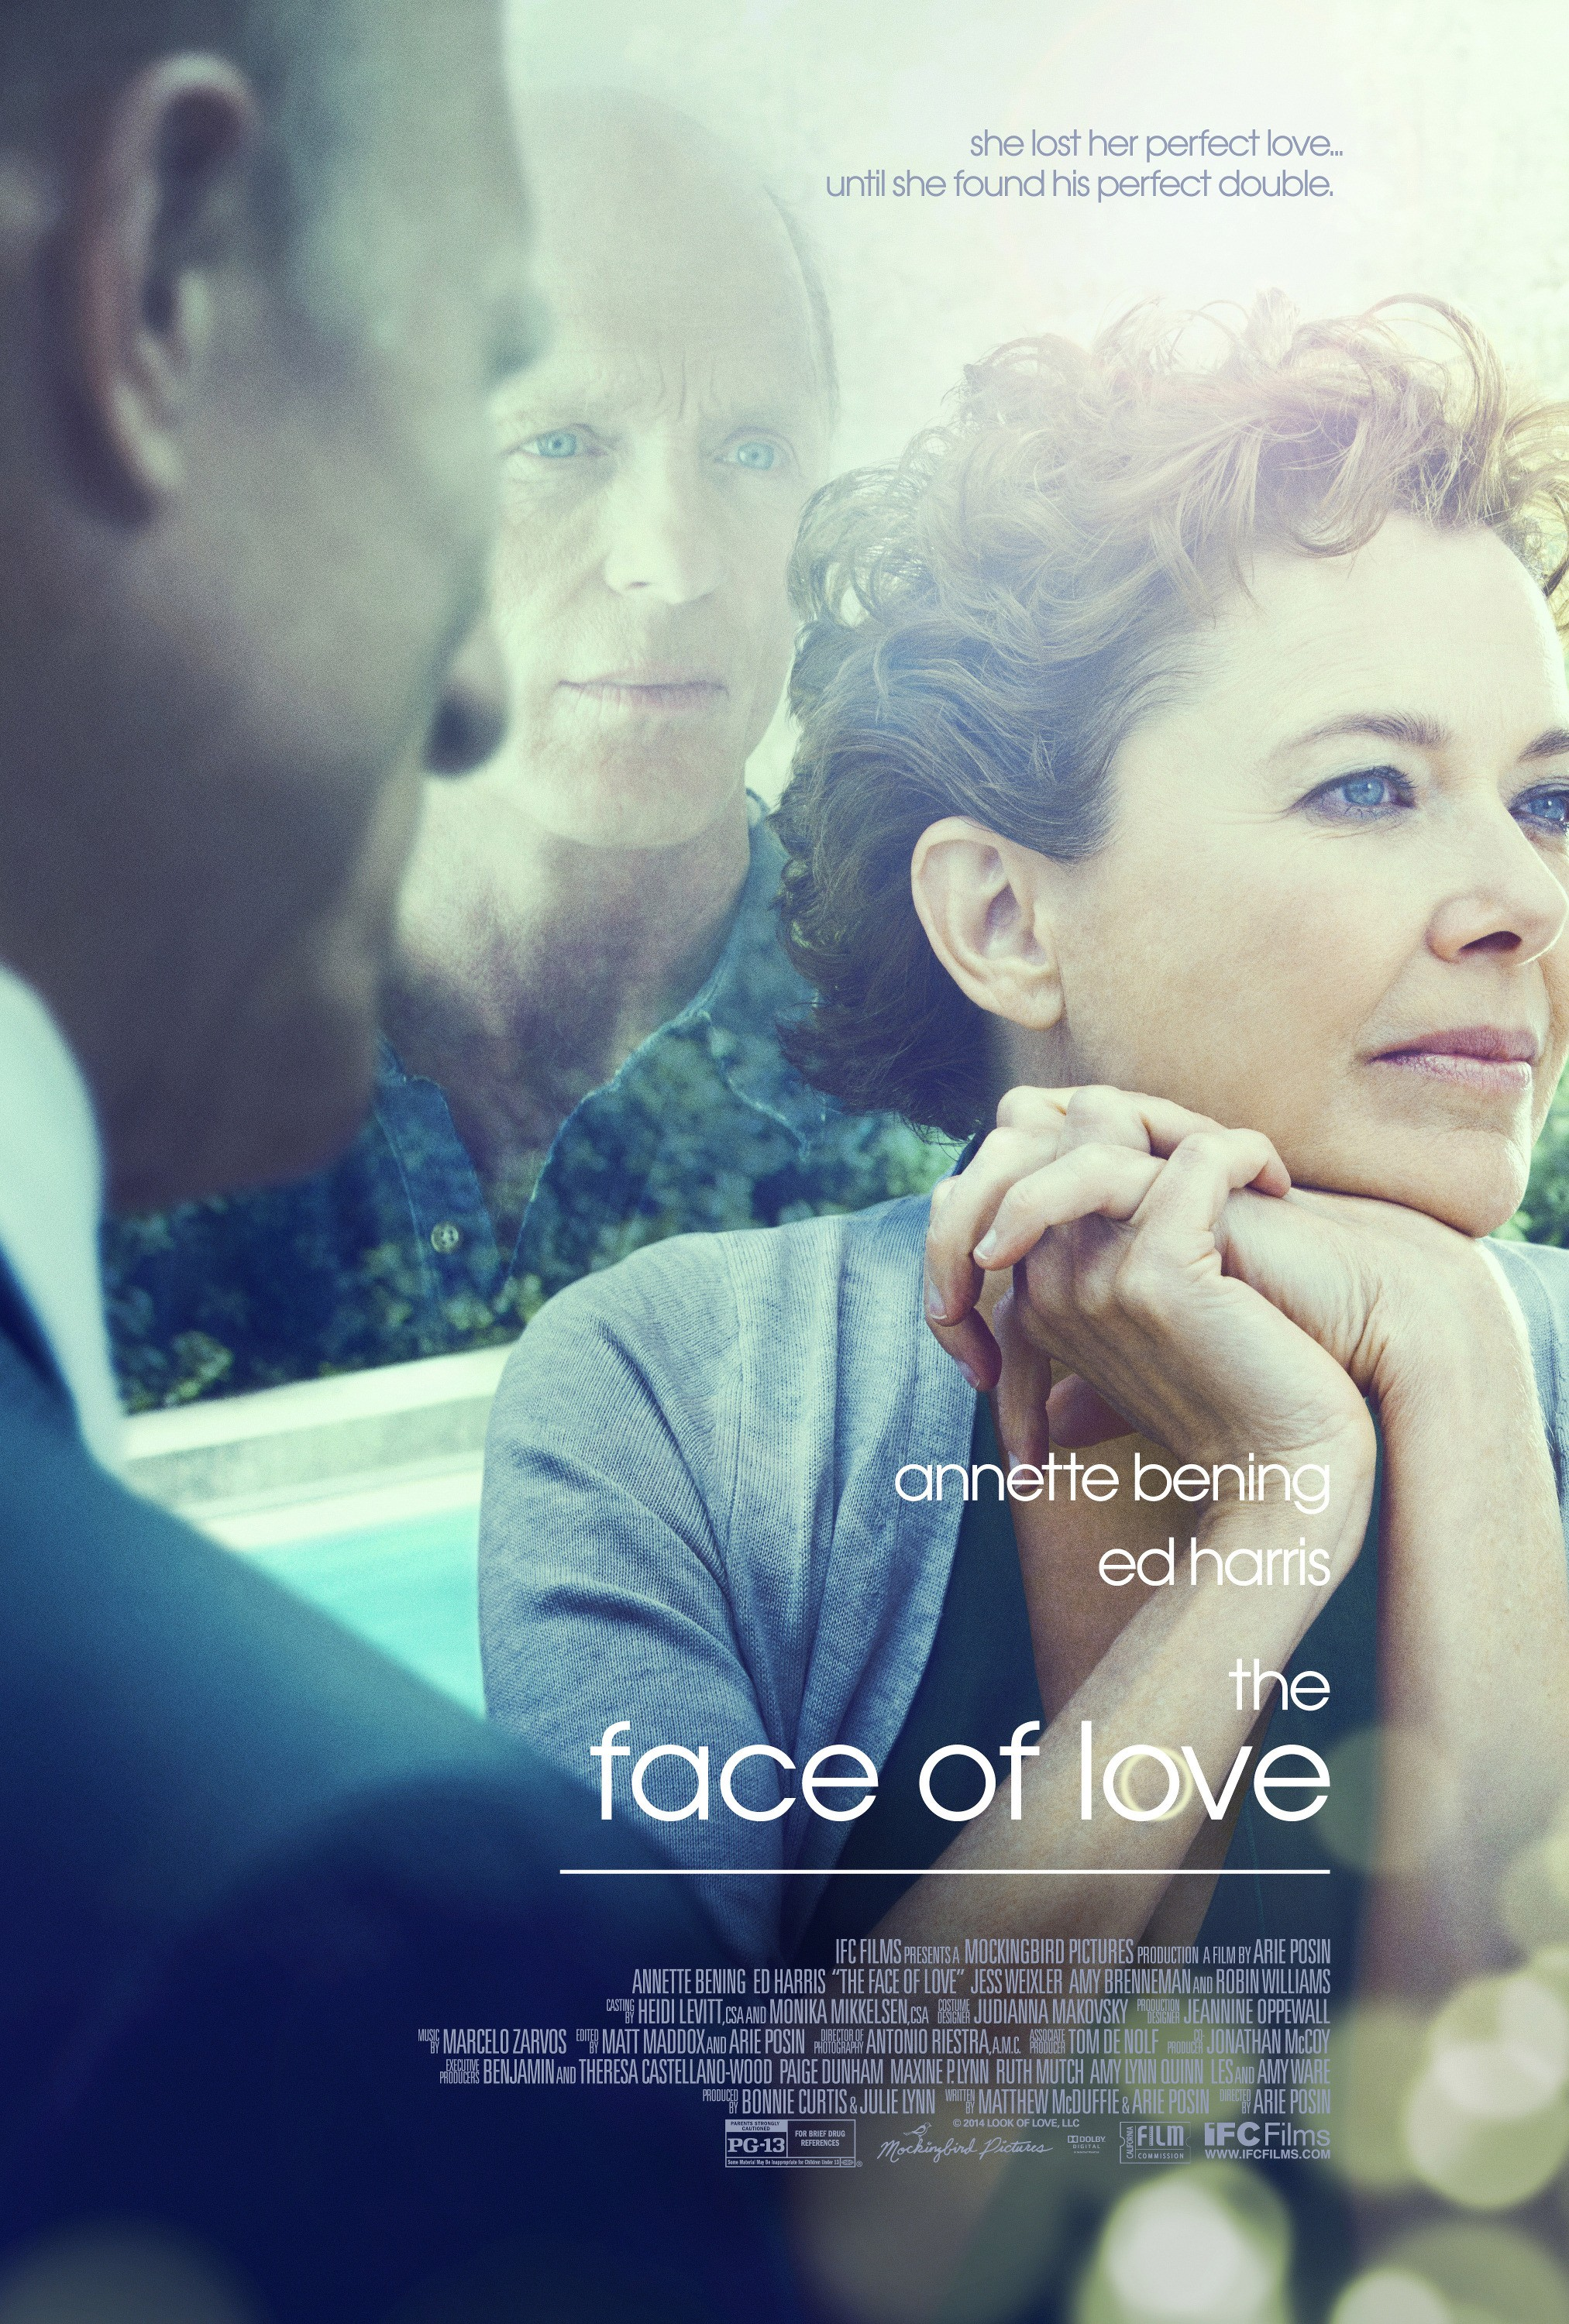 the-face-of-love-poster-2.jpg